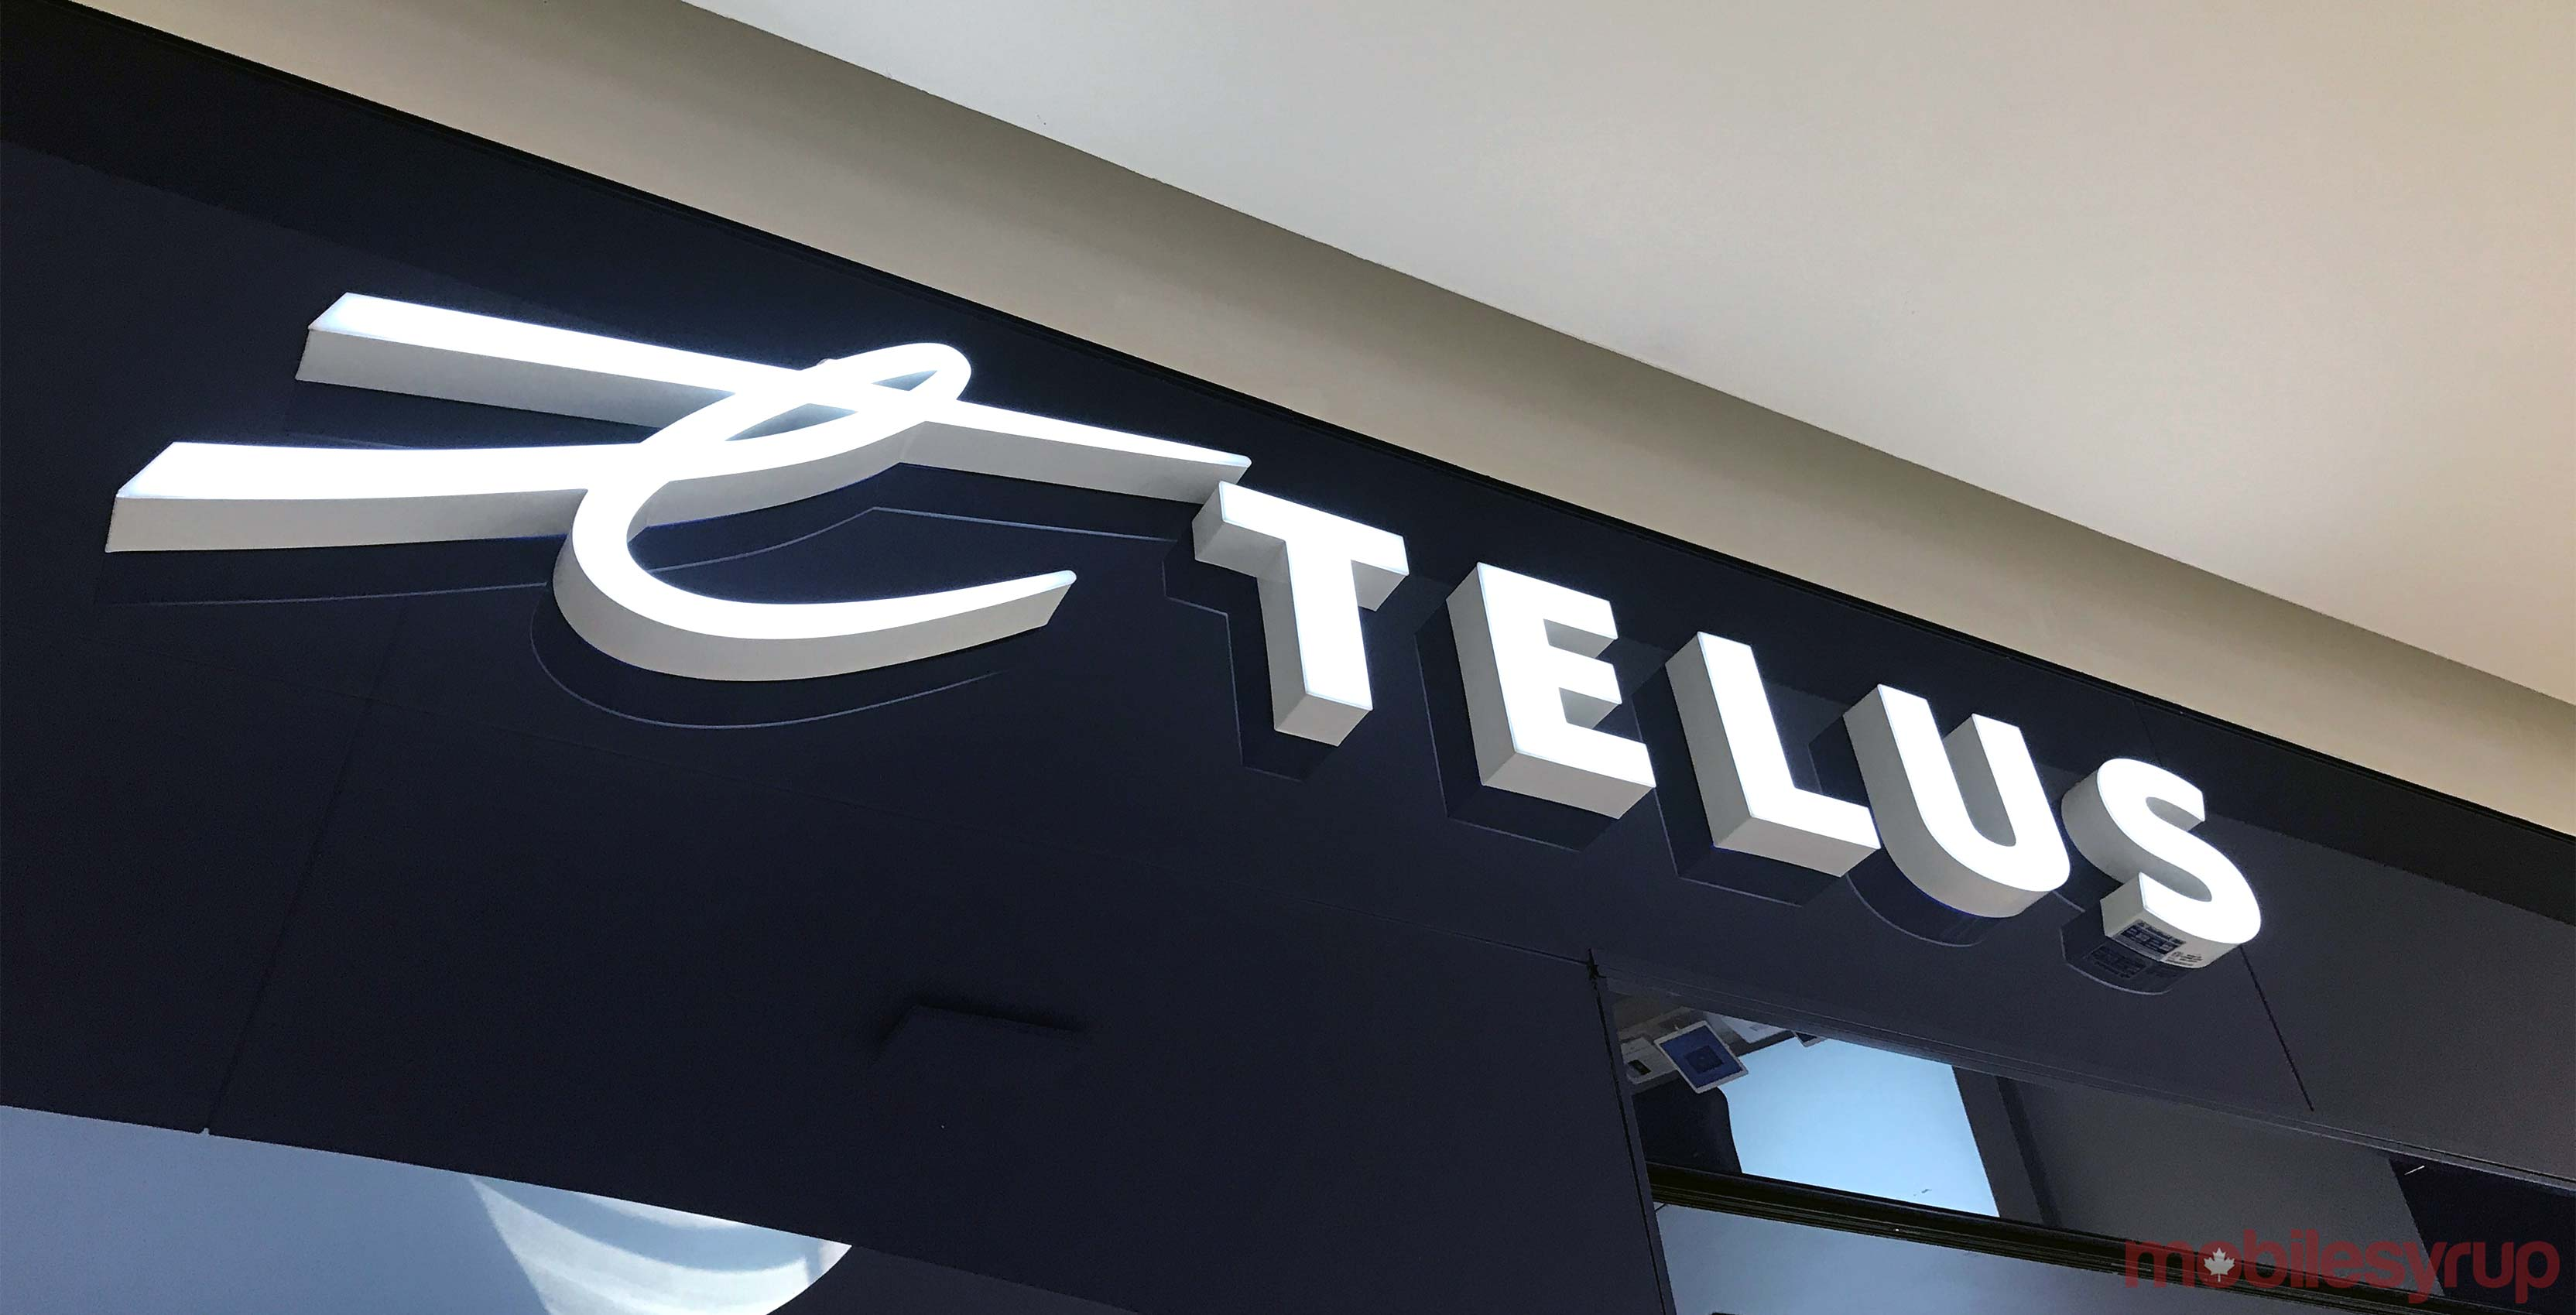 Telus has the fastest wireless network in Canada, according